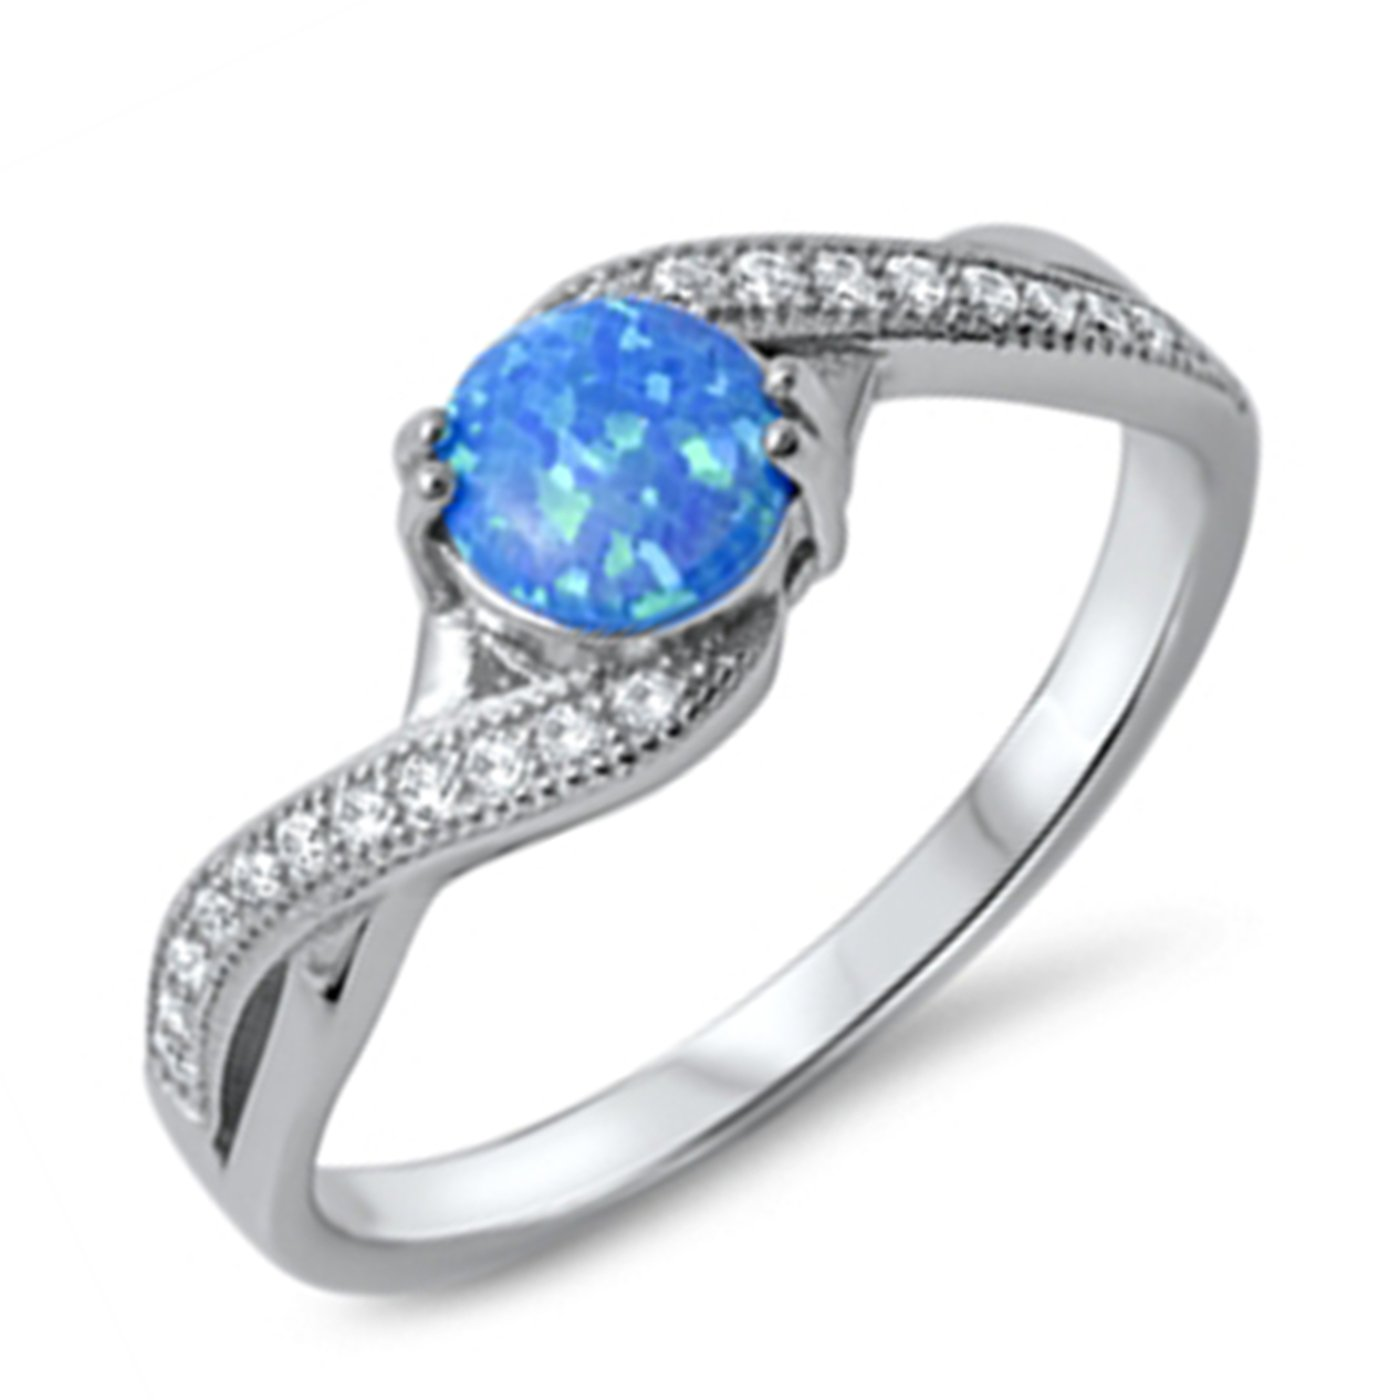 Blue Opal Lab Created Wedding Bands Womens Engagement Rings Sterling Silver CZ Sizes 4-10